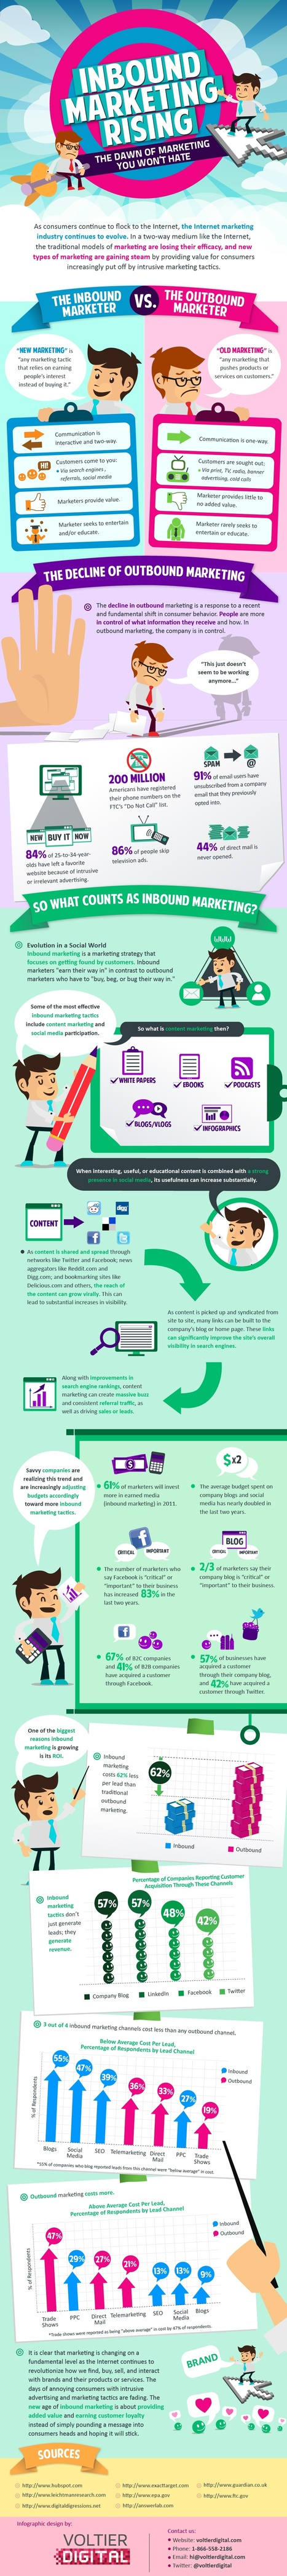 Key Concepts and Highlights from the Masters of Inbound Marketing [INFOGRAPHIC] | MarketingHits | Scoop.it